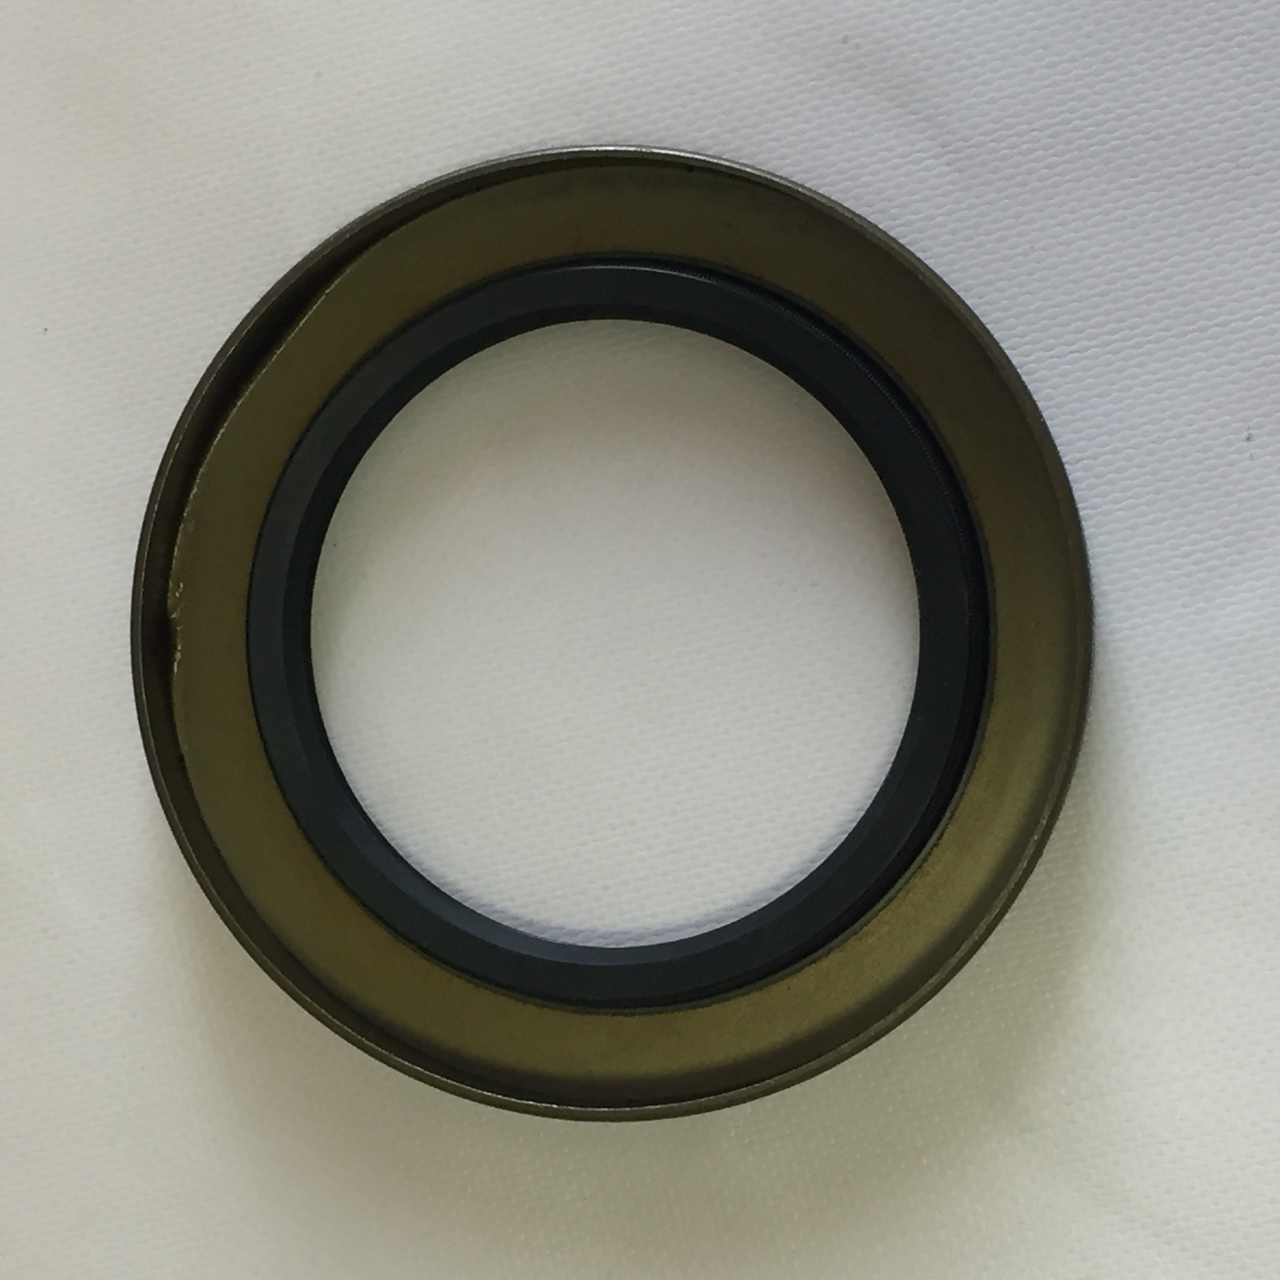 8k trailer axle grease seal 8000 lb capacity 10 36 tk trailer 8k trailer axle grease seal 8000 lb capacity 10 36 publicscrutiny Images